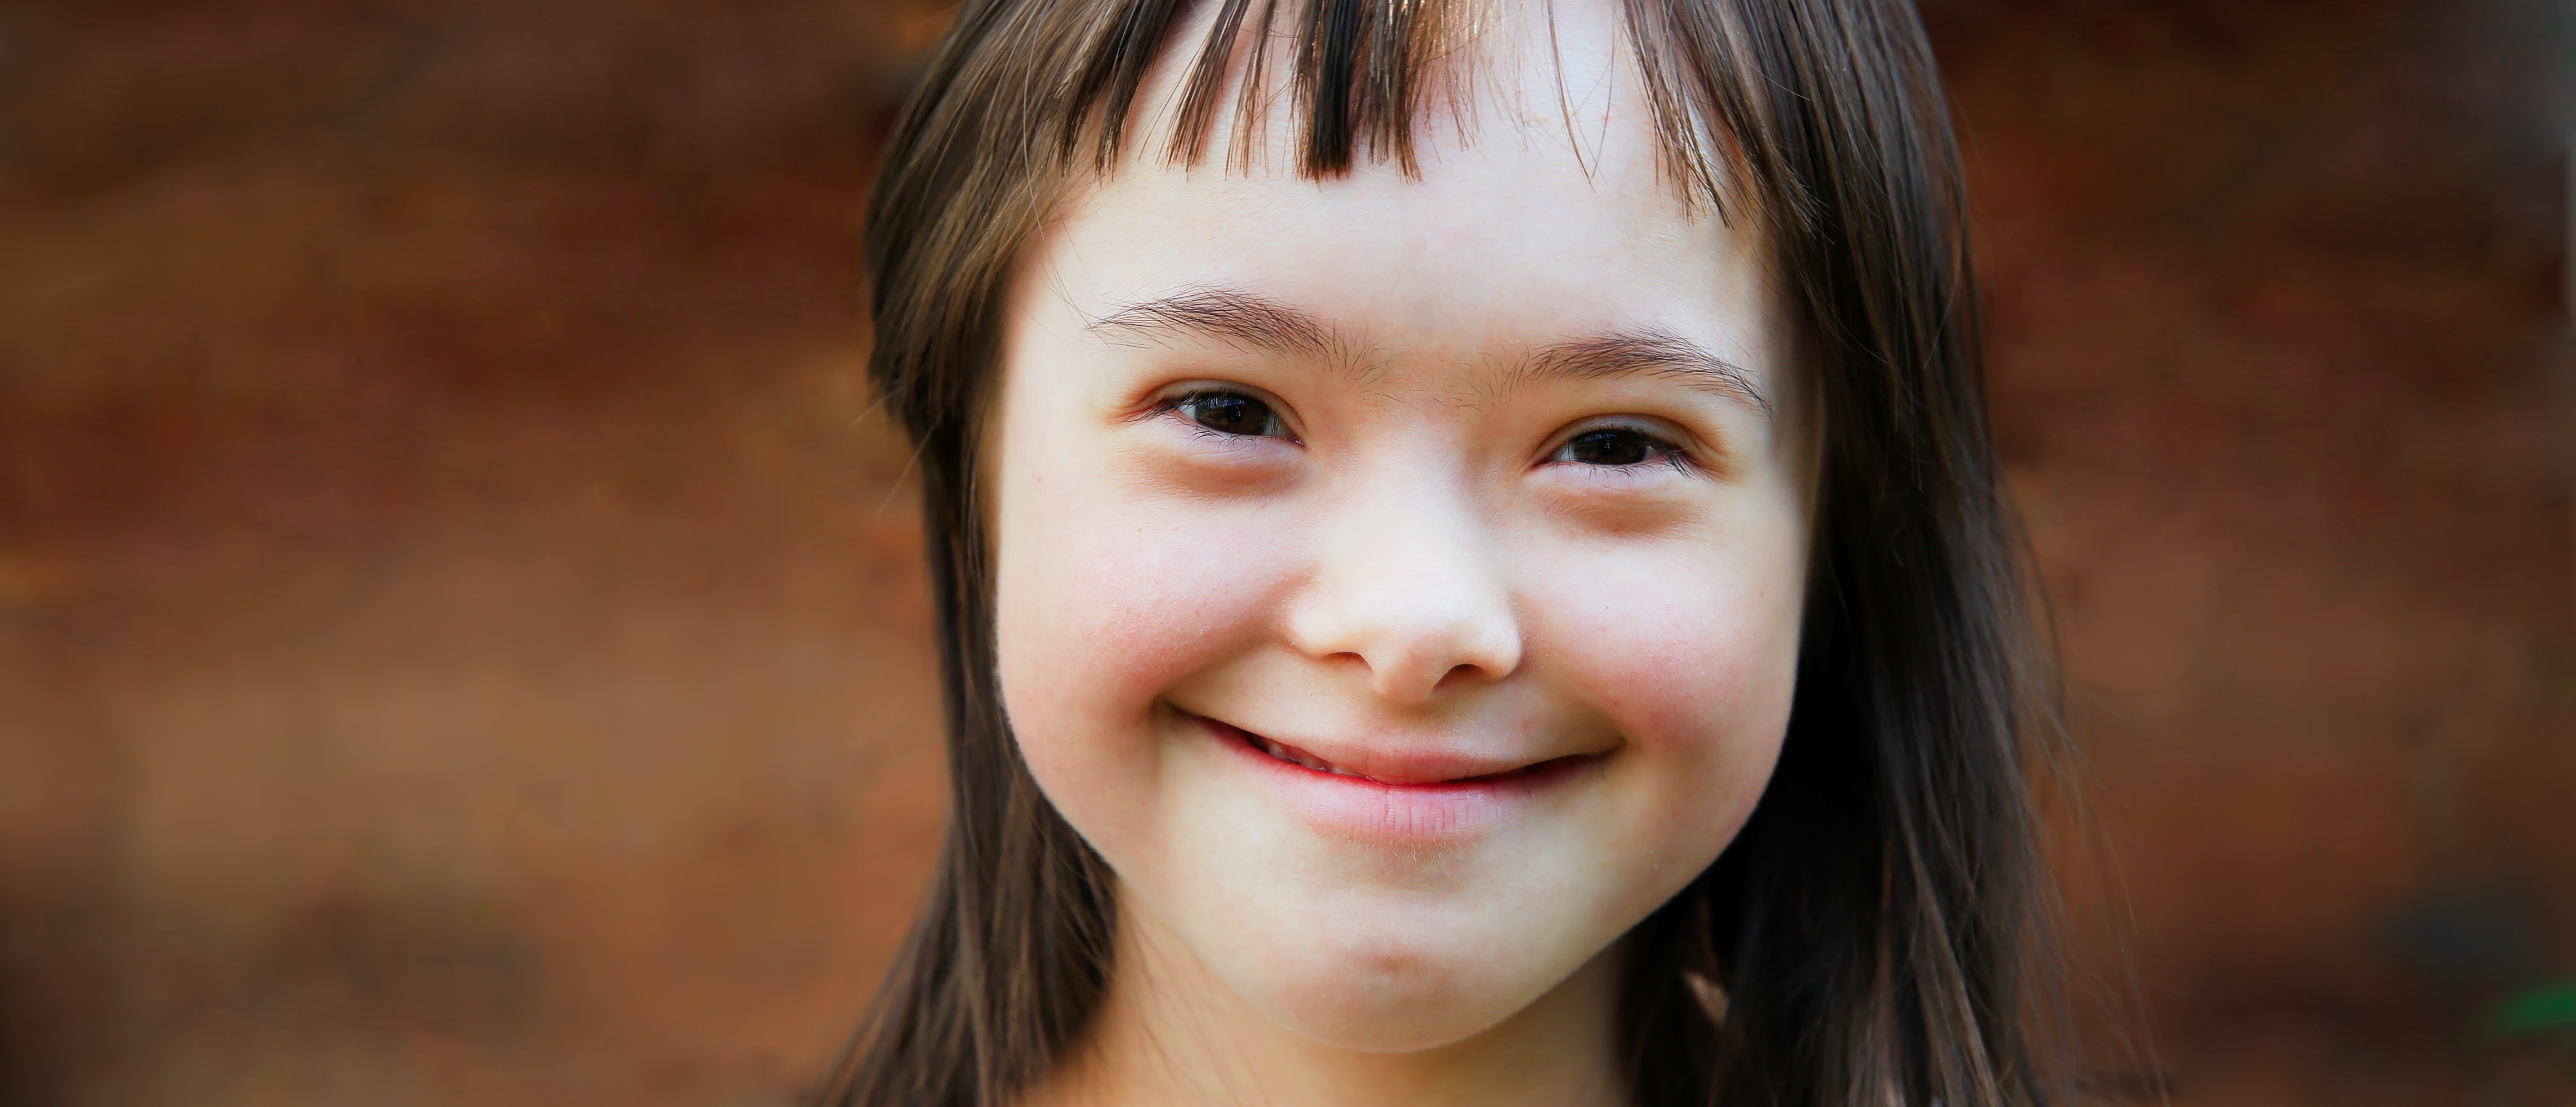 14352f0f2 Gerber Baby Inspires Down Syndrome Abortion Bans Across The U.S. ...